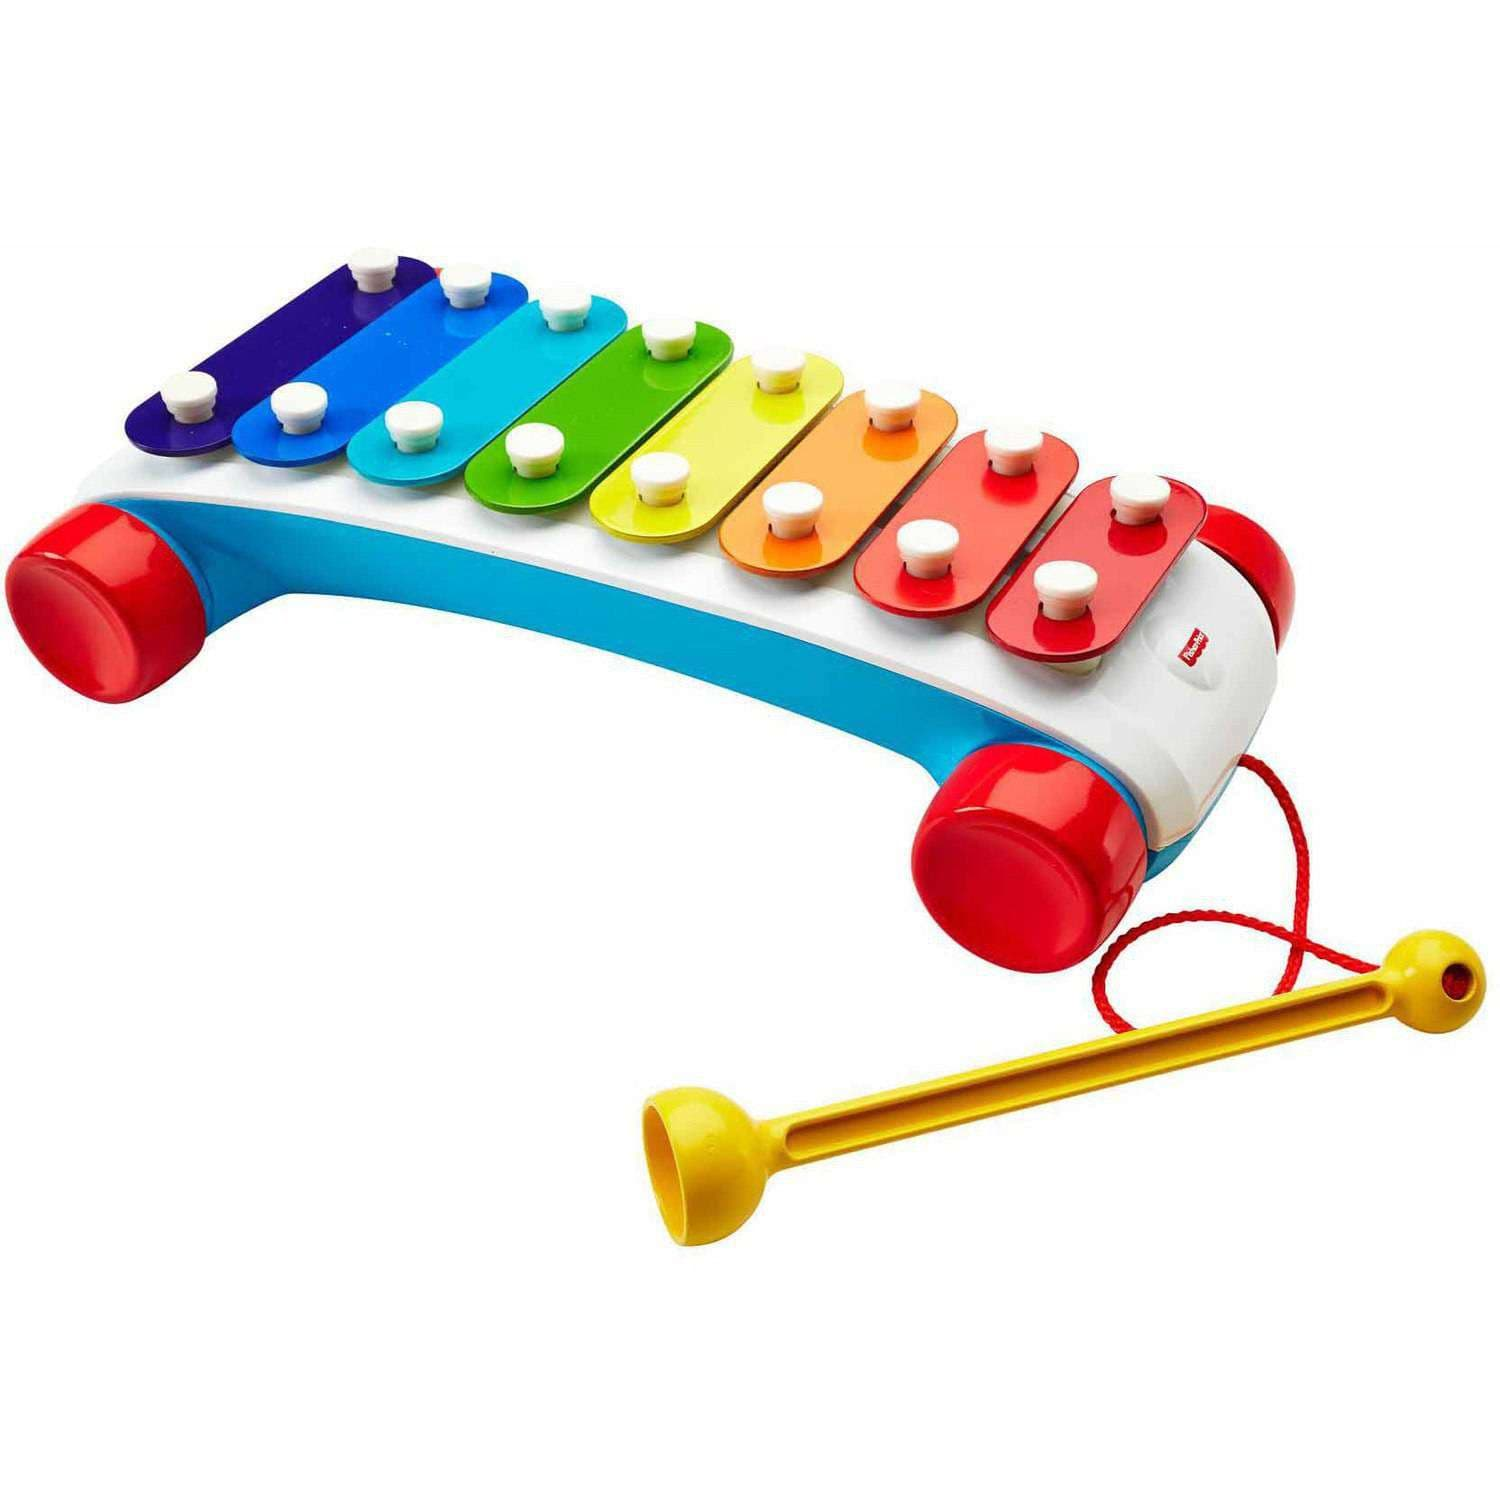 Fisher-Price Classic Xylophone $6 at Amazon or Walmart